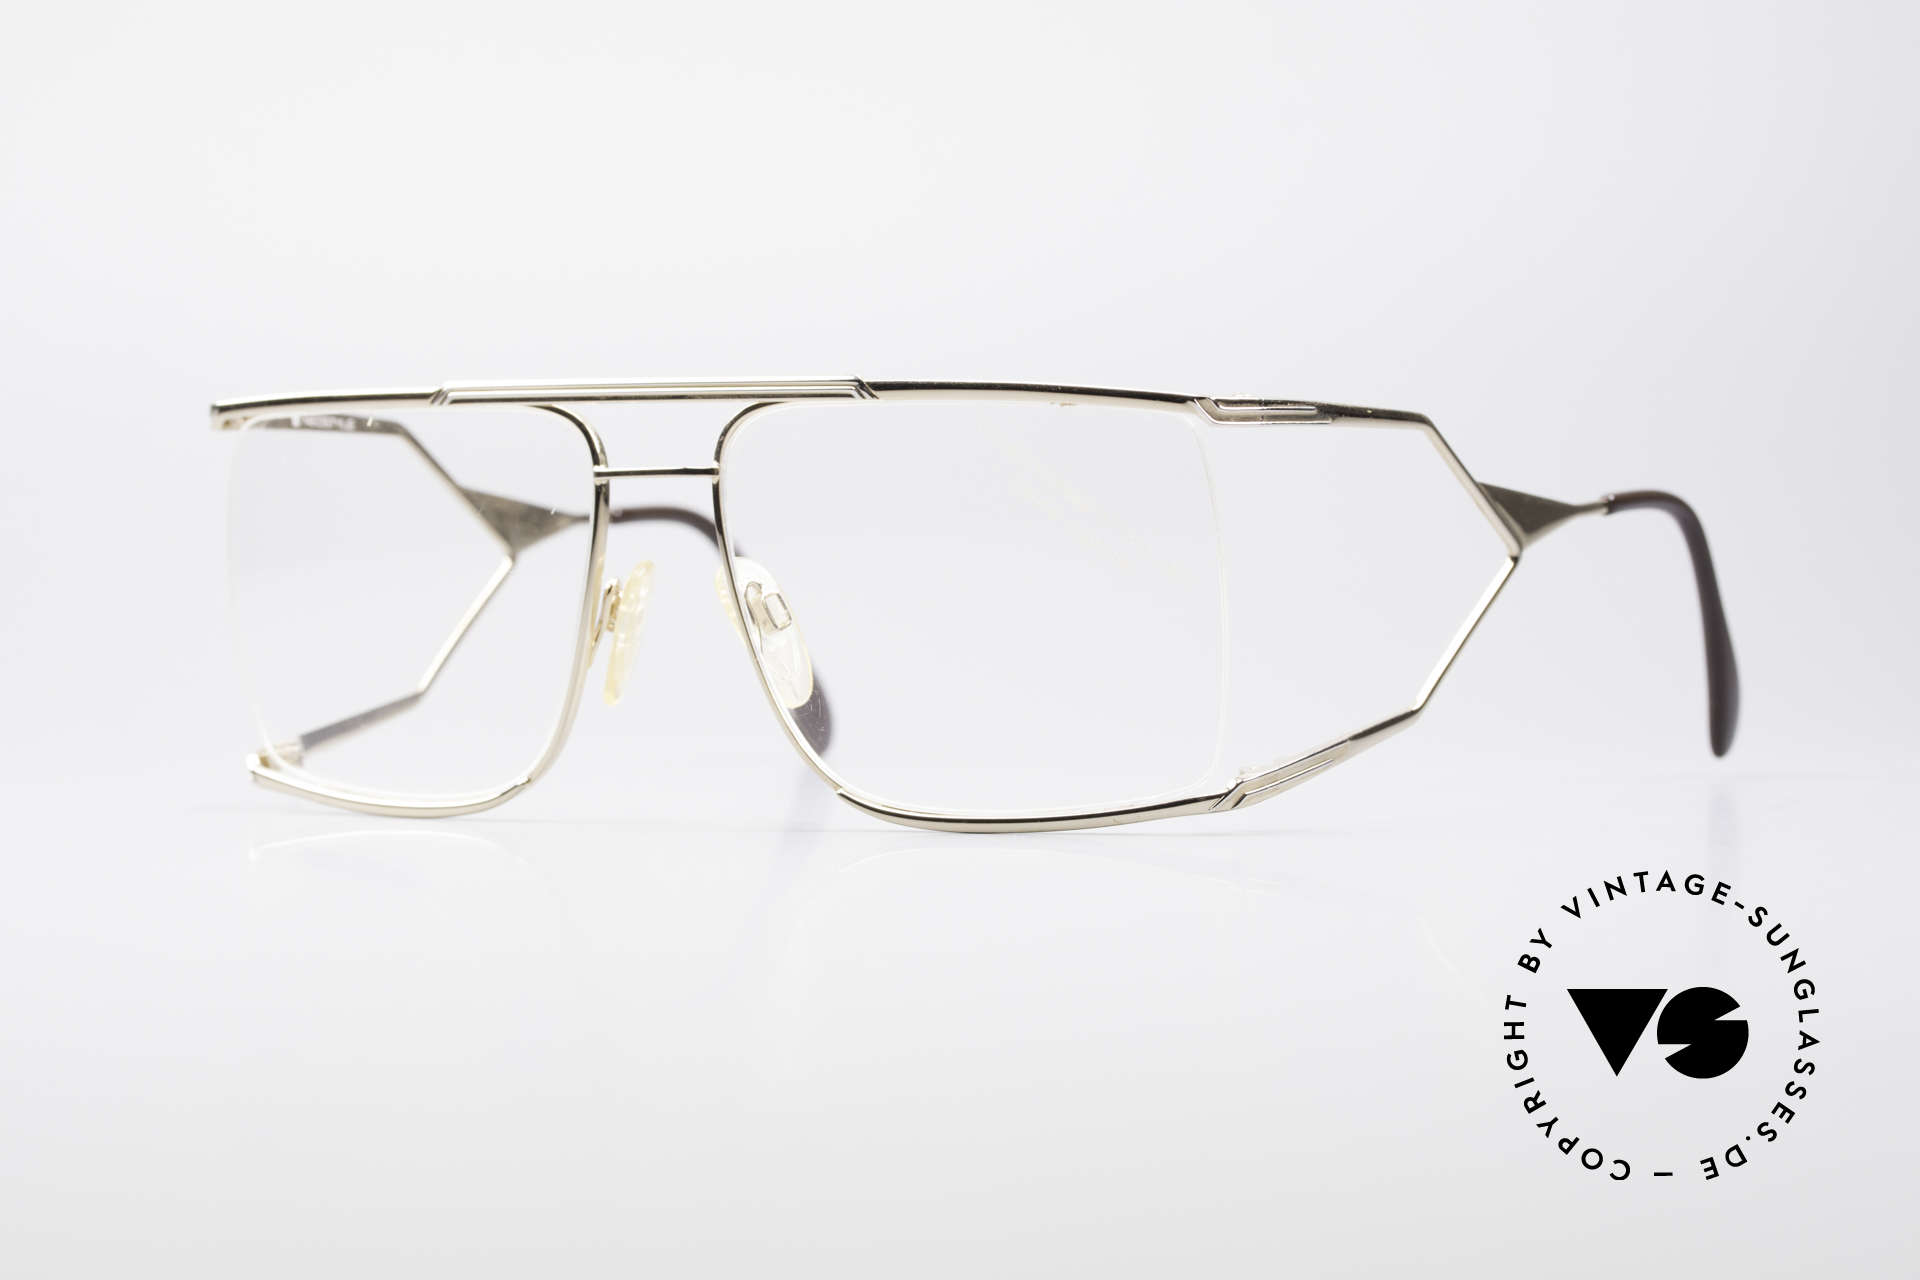 Neostyle Nautic 6 80's Miami Vice Eyeglasses, famous Nautic Series by Neostyle from the 70's/80's, Made for Men